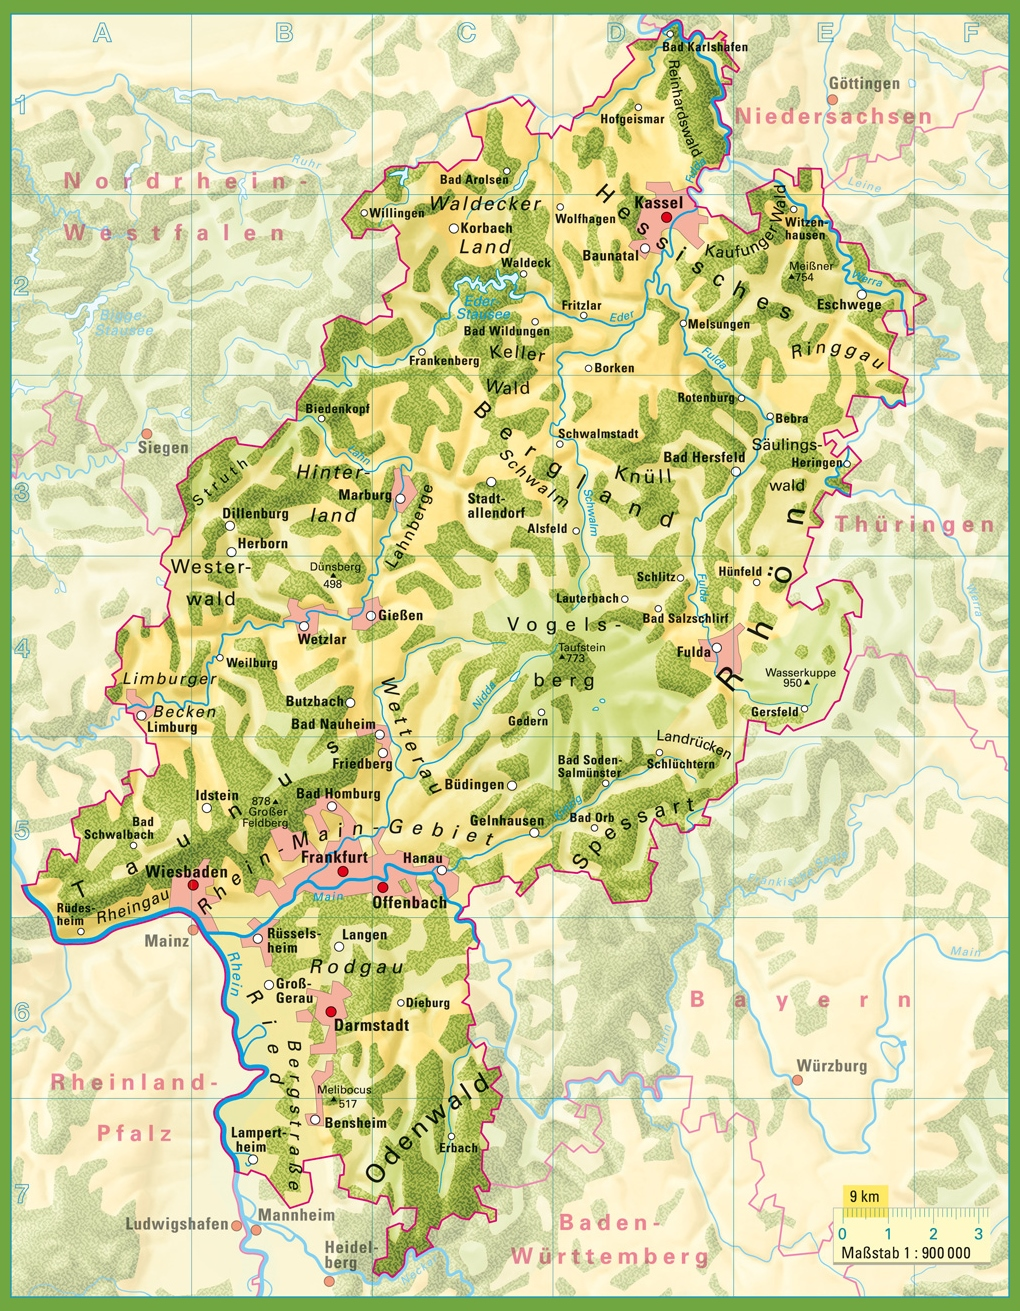 russia physical map rivers with Hesse Physical Map on Serbia together with Karta Kryma further Mongolian Geography Maps furthermore World Asia Centric Projection Map likewise Bielorrusia Mapa De La Region.